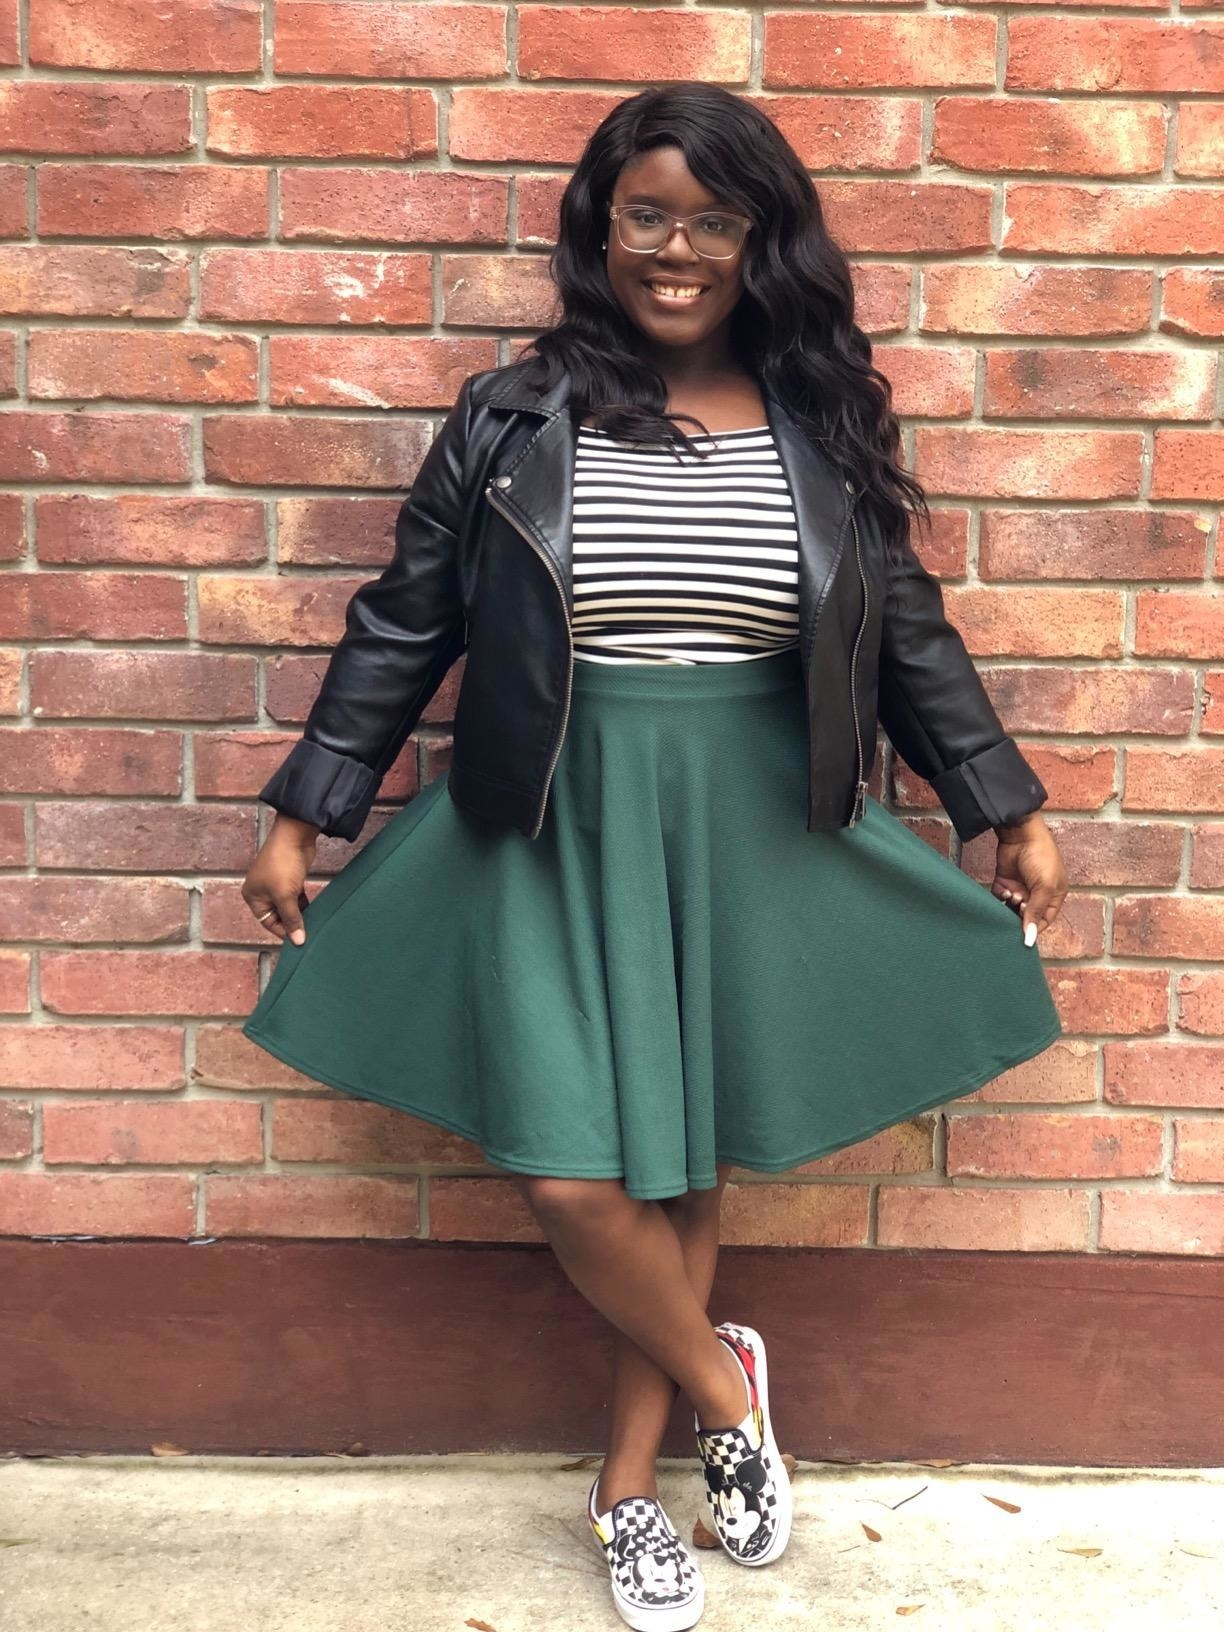 Reviewer wearing the knee-length skirt in green